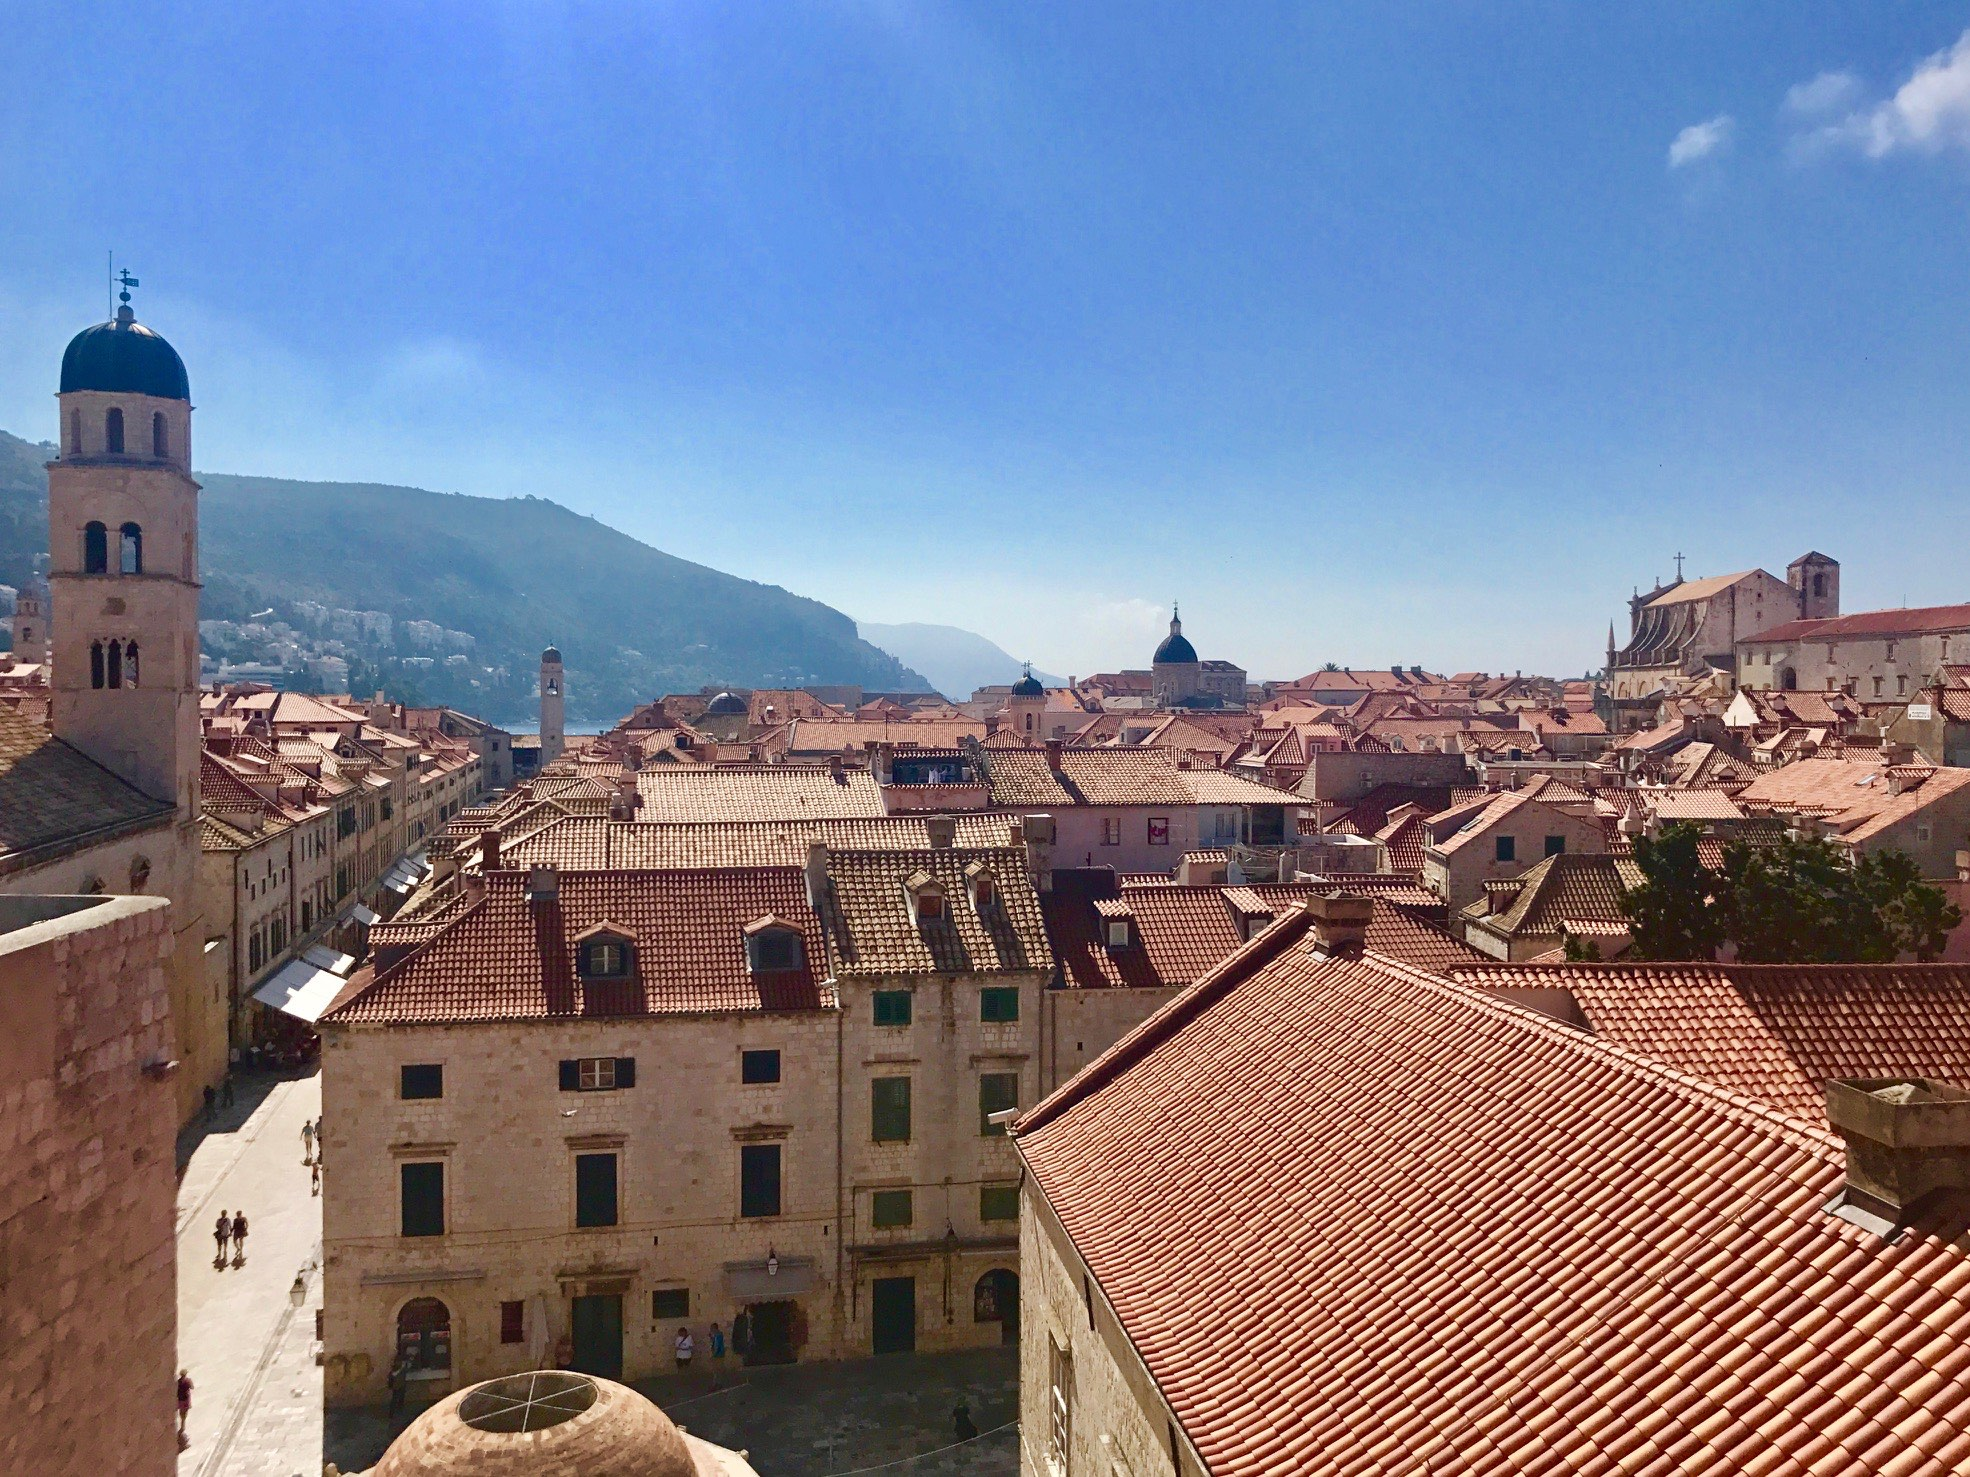 Day Thirteen: A Day in King's Landing